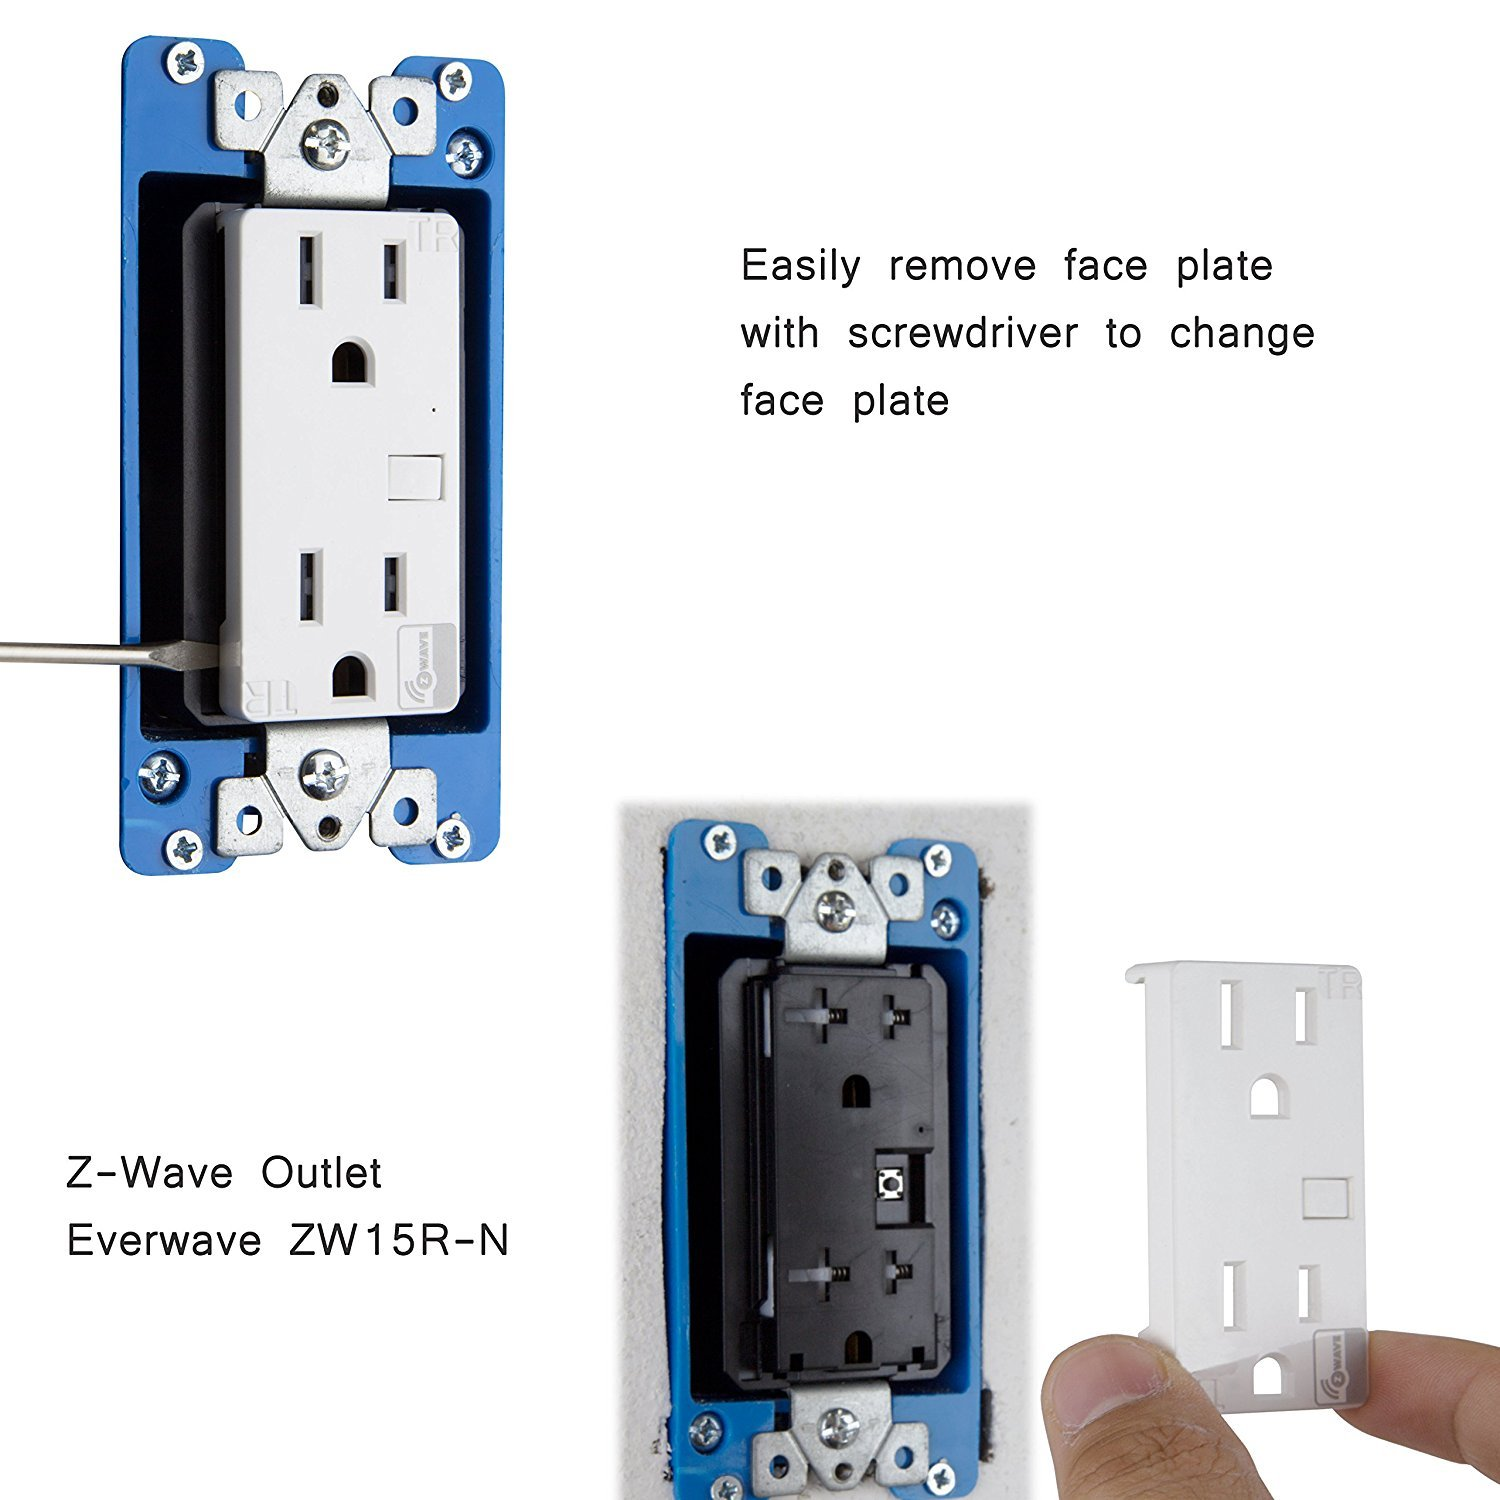 Z-Wave Outlet by Enerwave | Smart Outlet for Z-Wave Home Automation ...